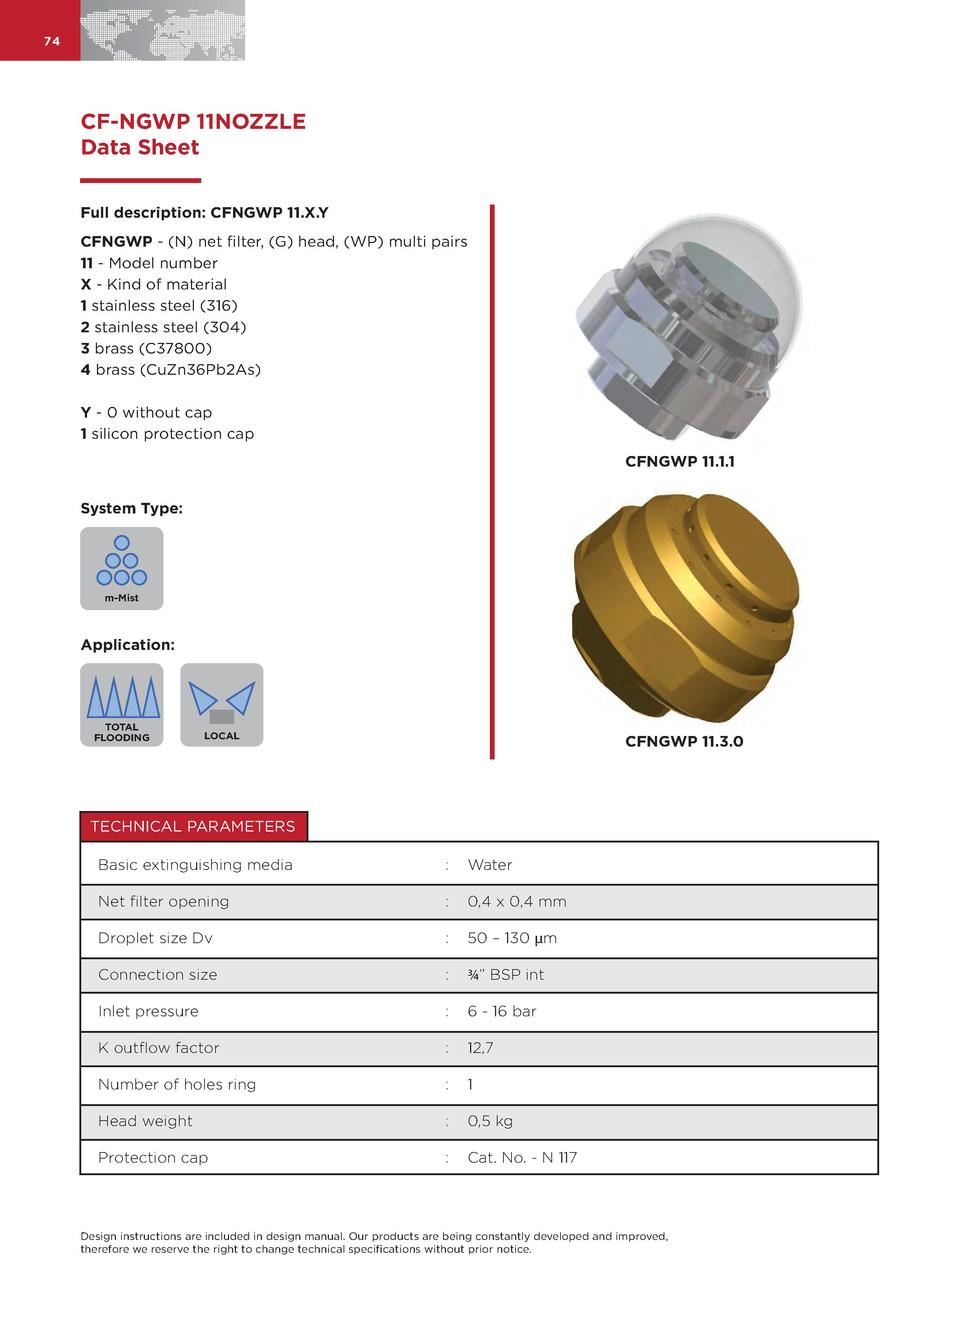 74  CF-NGWP 11NOZZLE Data Sheet Full description  CFNGWP 11.X.Y CFNGWP -  N  net filter,  G  head,  WP  multi pairs 11 - M...